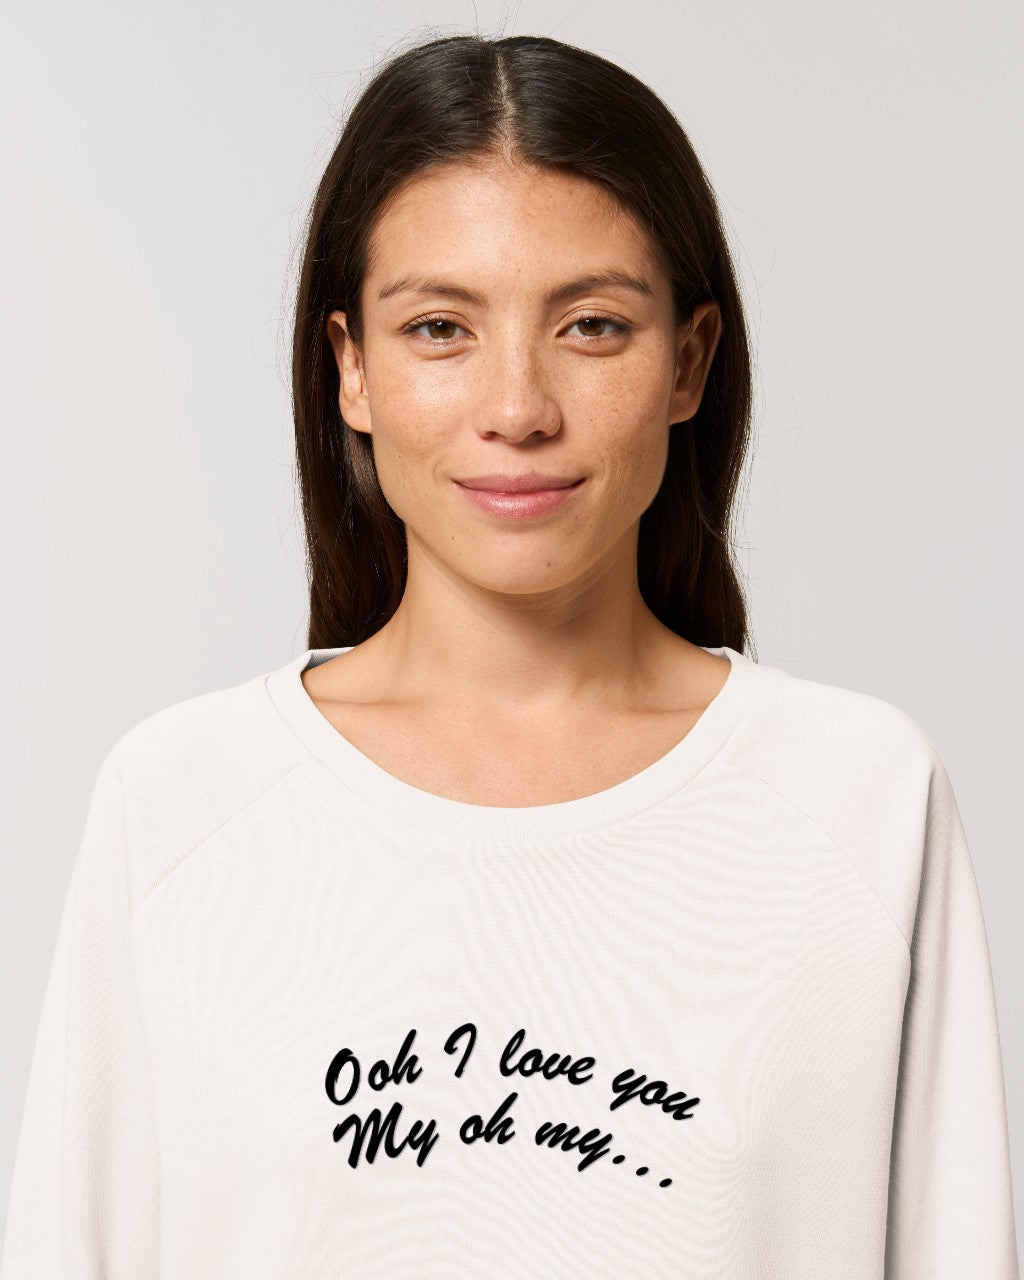 'OOH I LOVE YOU MY OH MY' EMBROIDERED WOMEN'S RELAXED FIT ORGANIC COTTON SWEATSHIRT